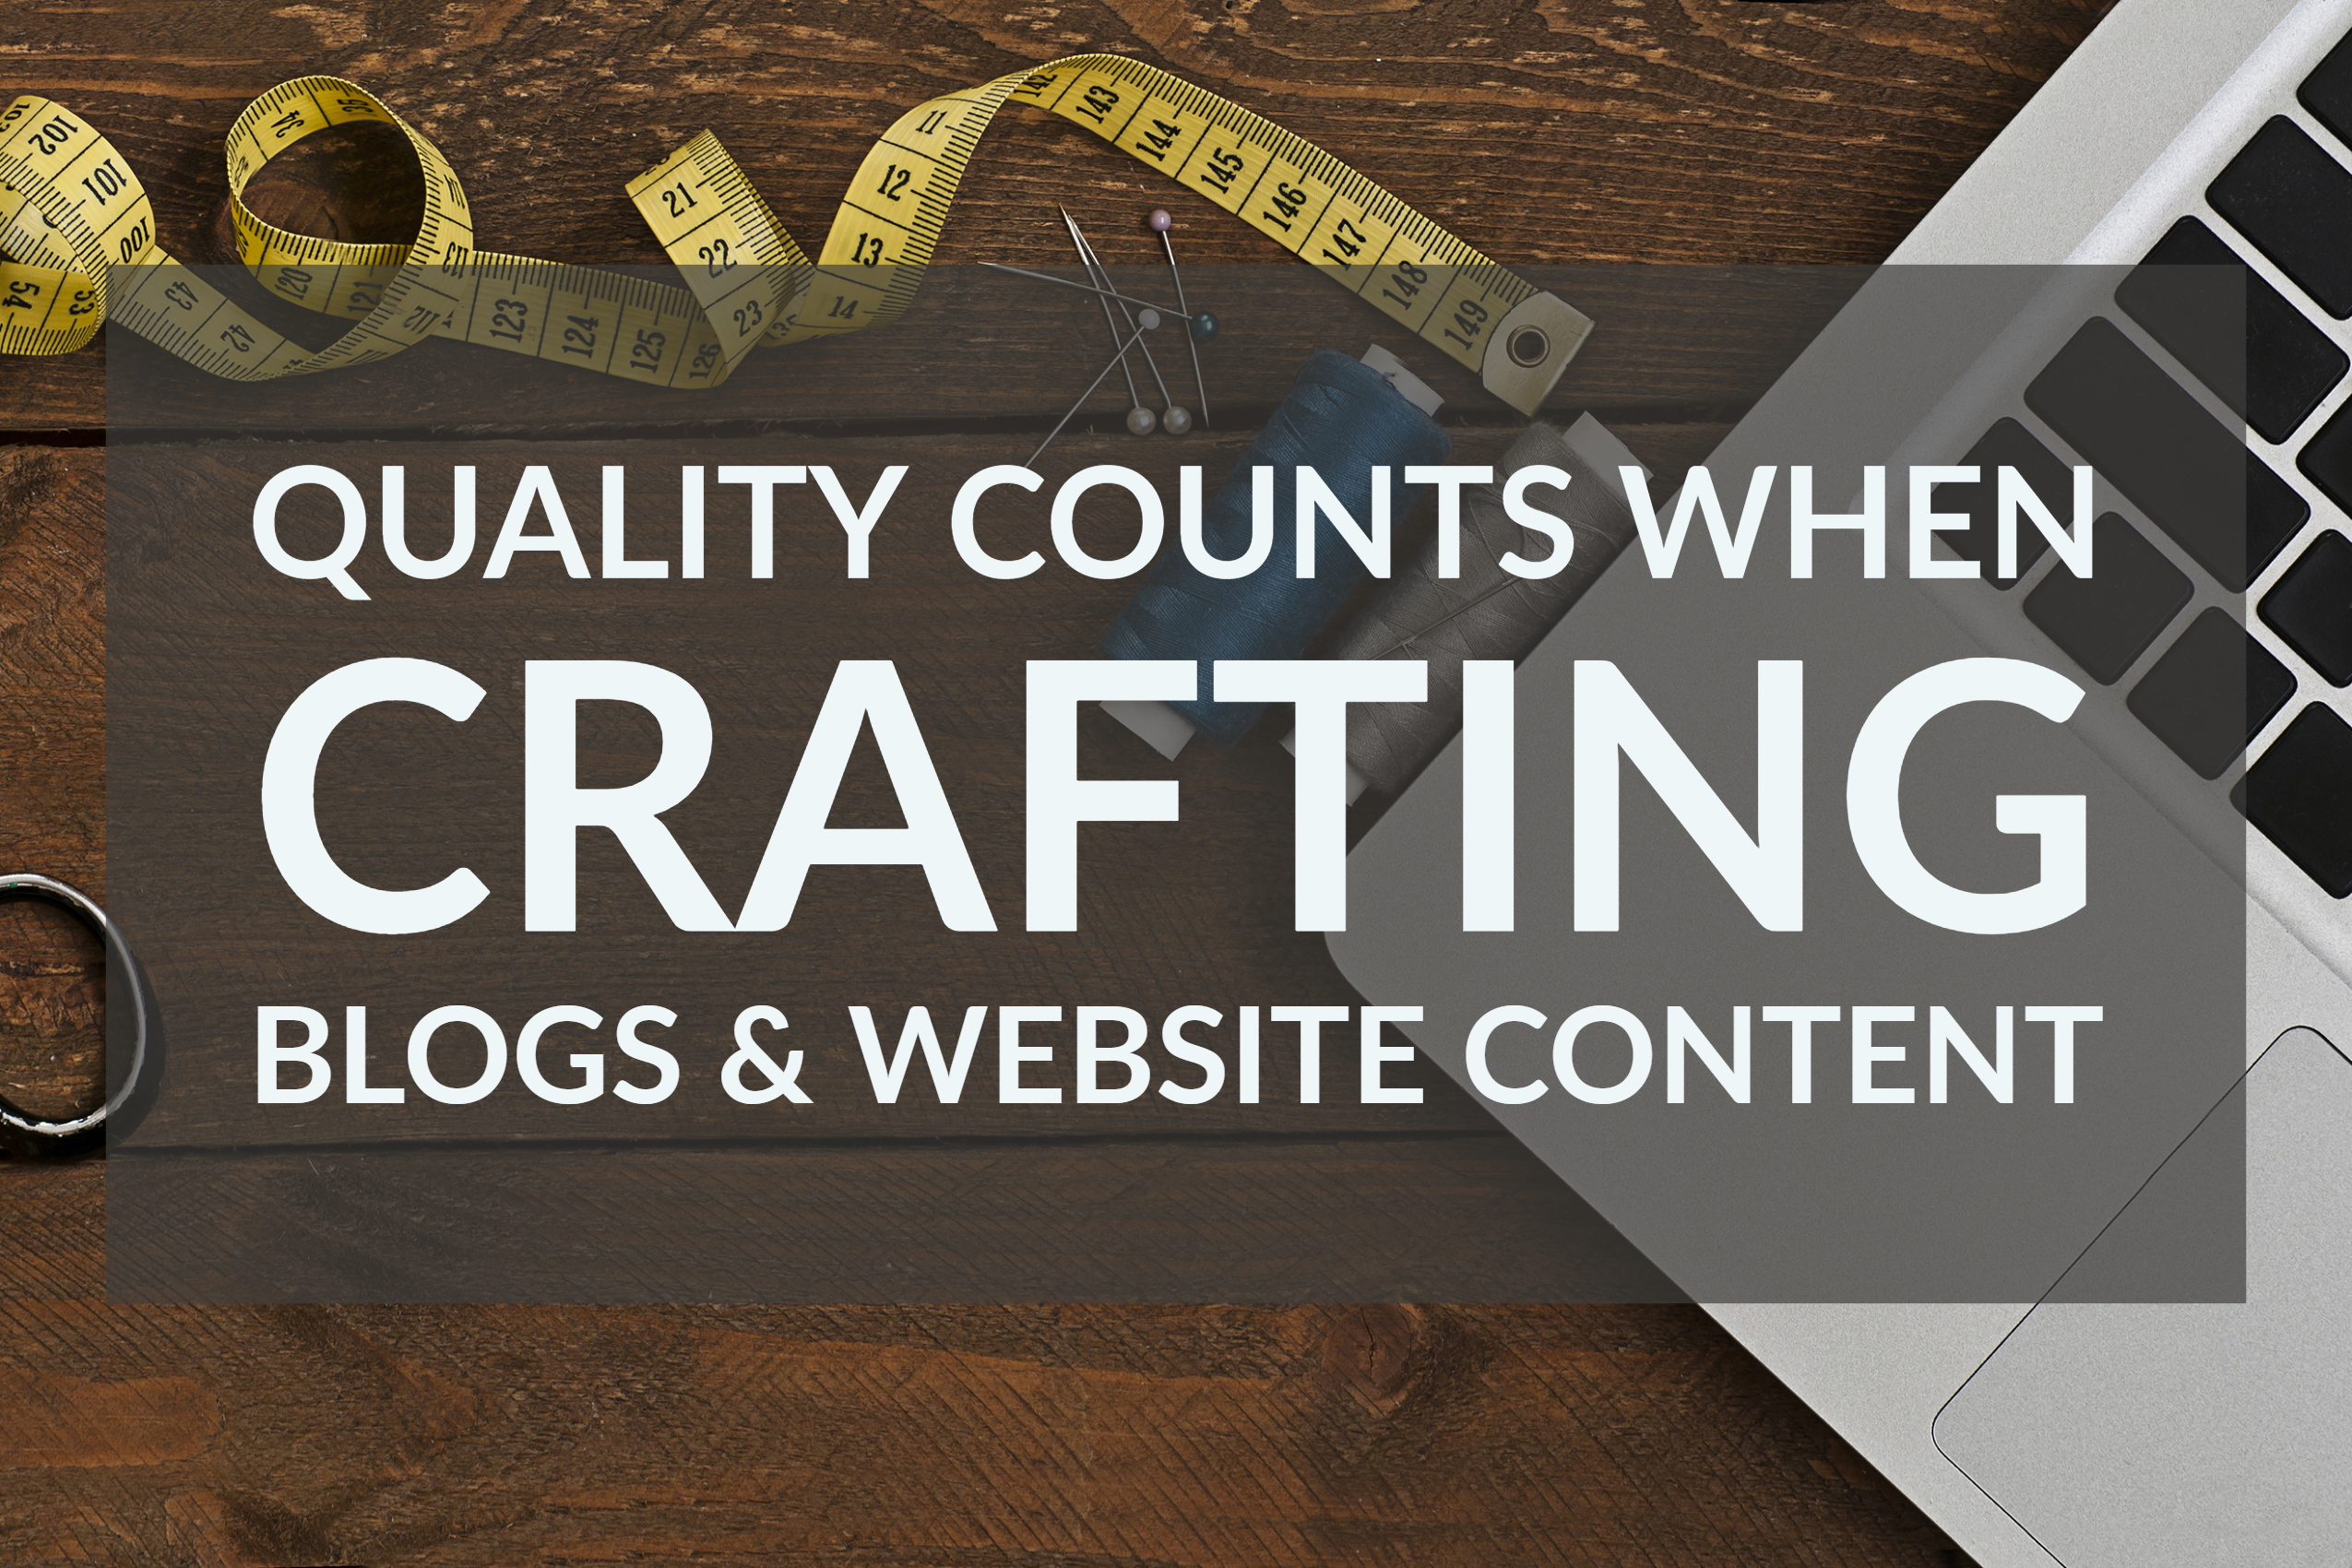 Quality Counts When Crafting Blogs & Website Content